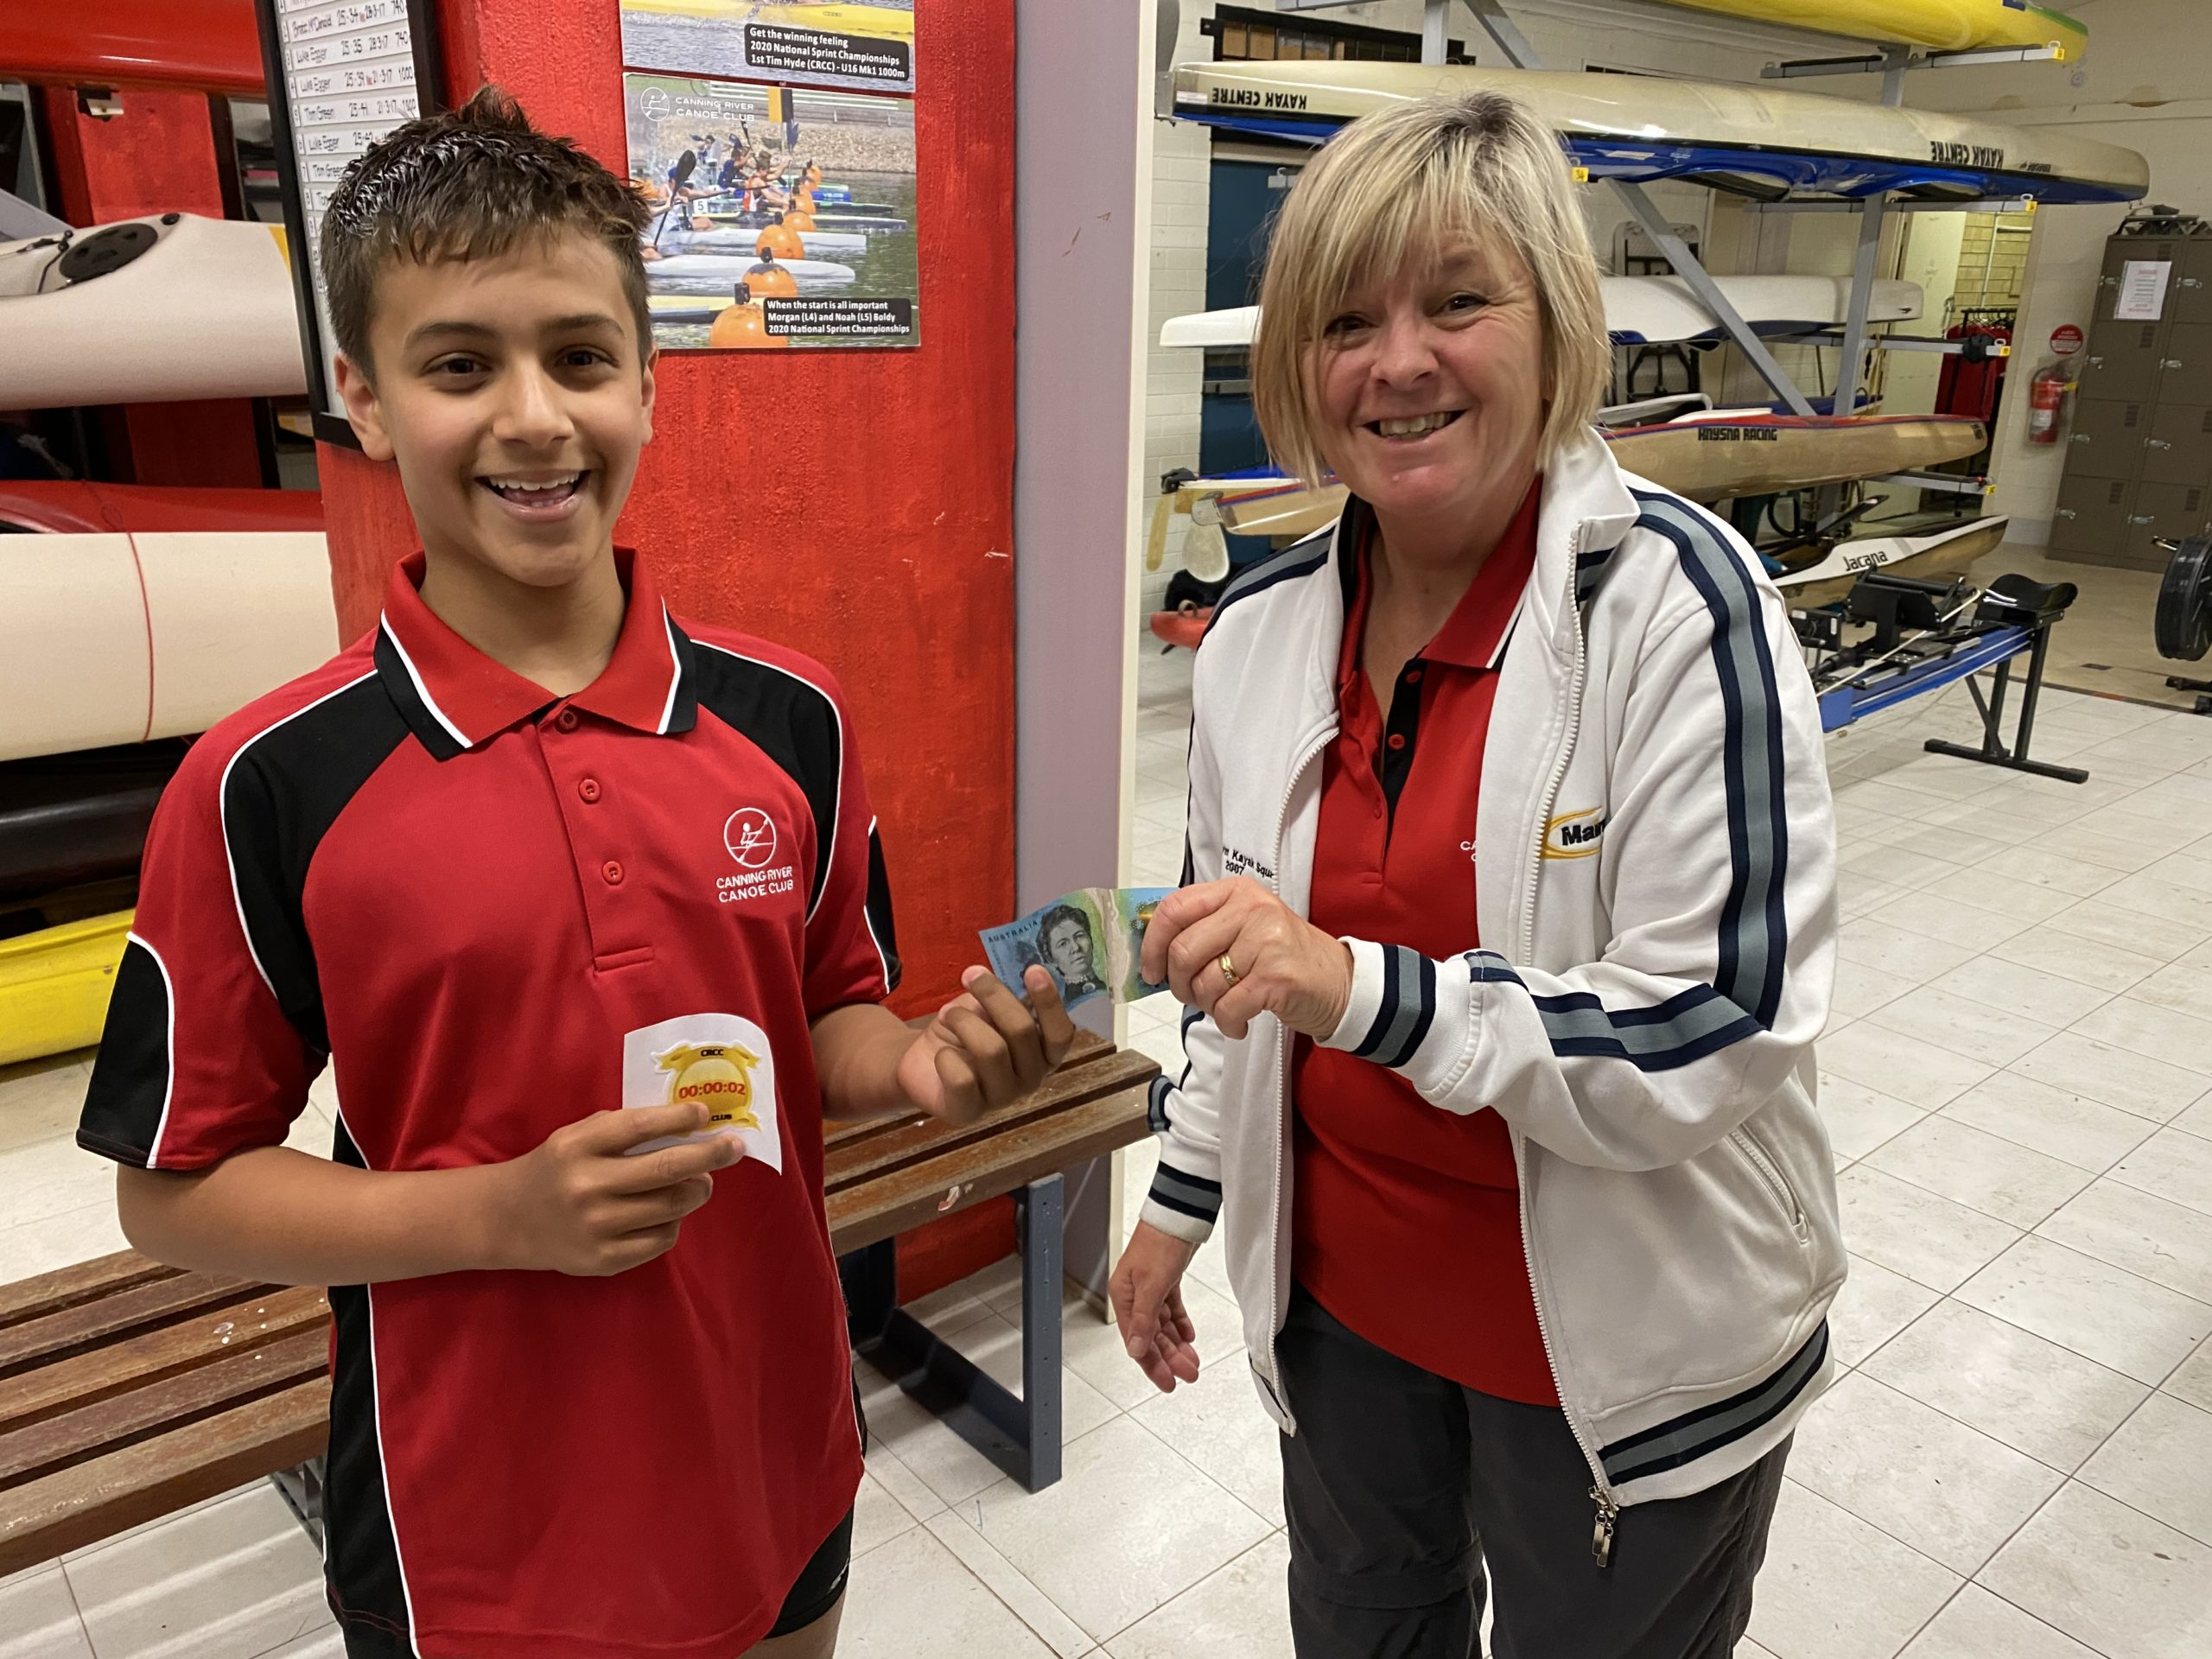 Tuesday 6th October 2020 : Tonight's photo shows club member Judith Thompson presenting tonight's winner Connor Jacob with $10 cash.